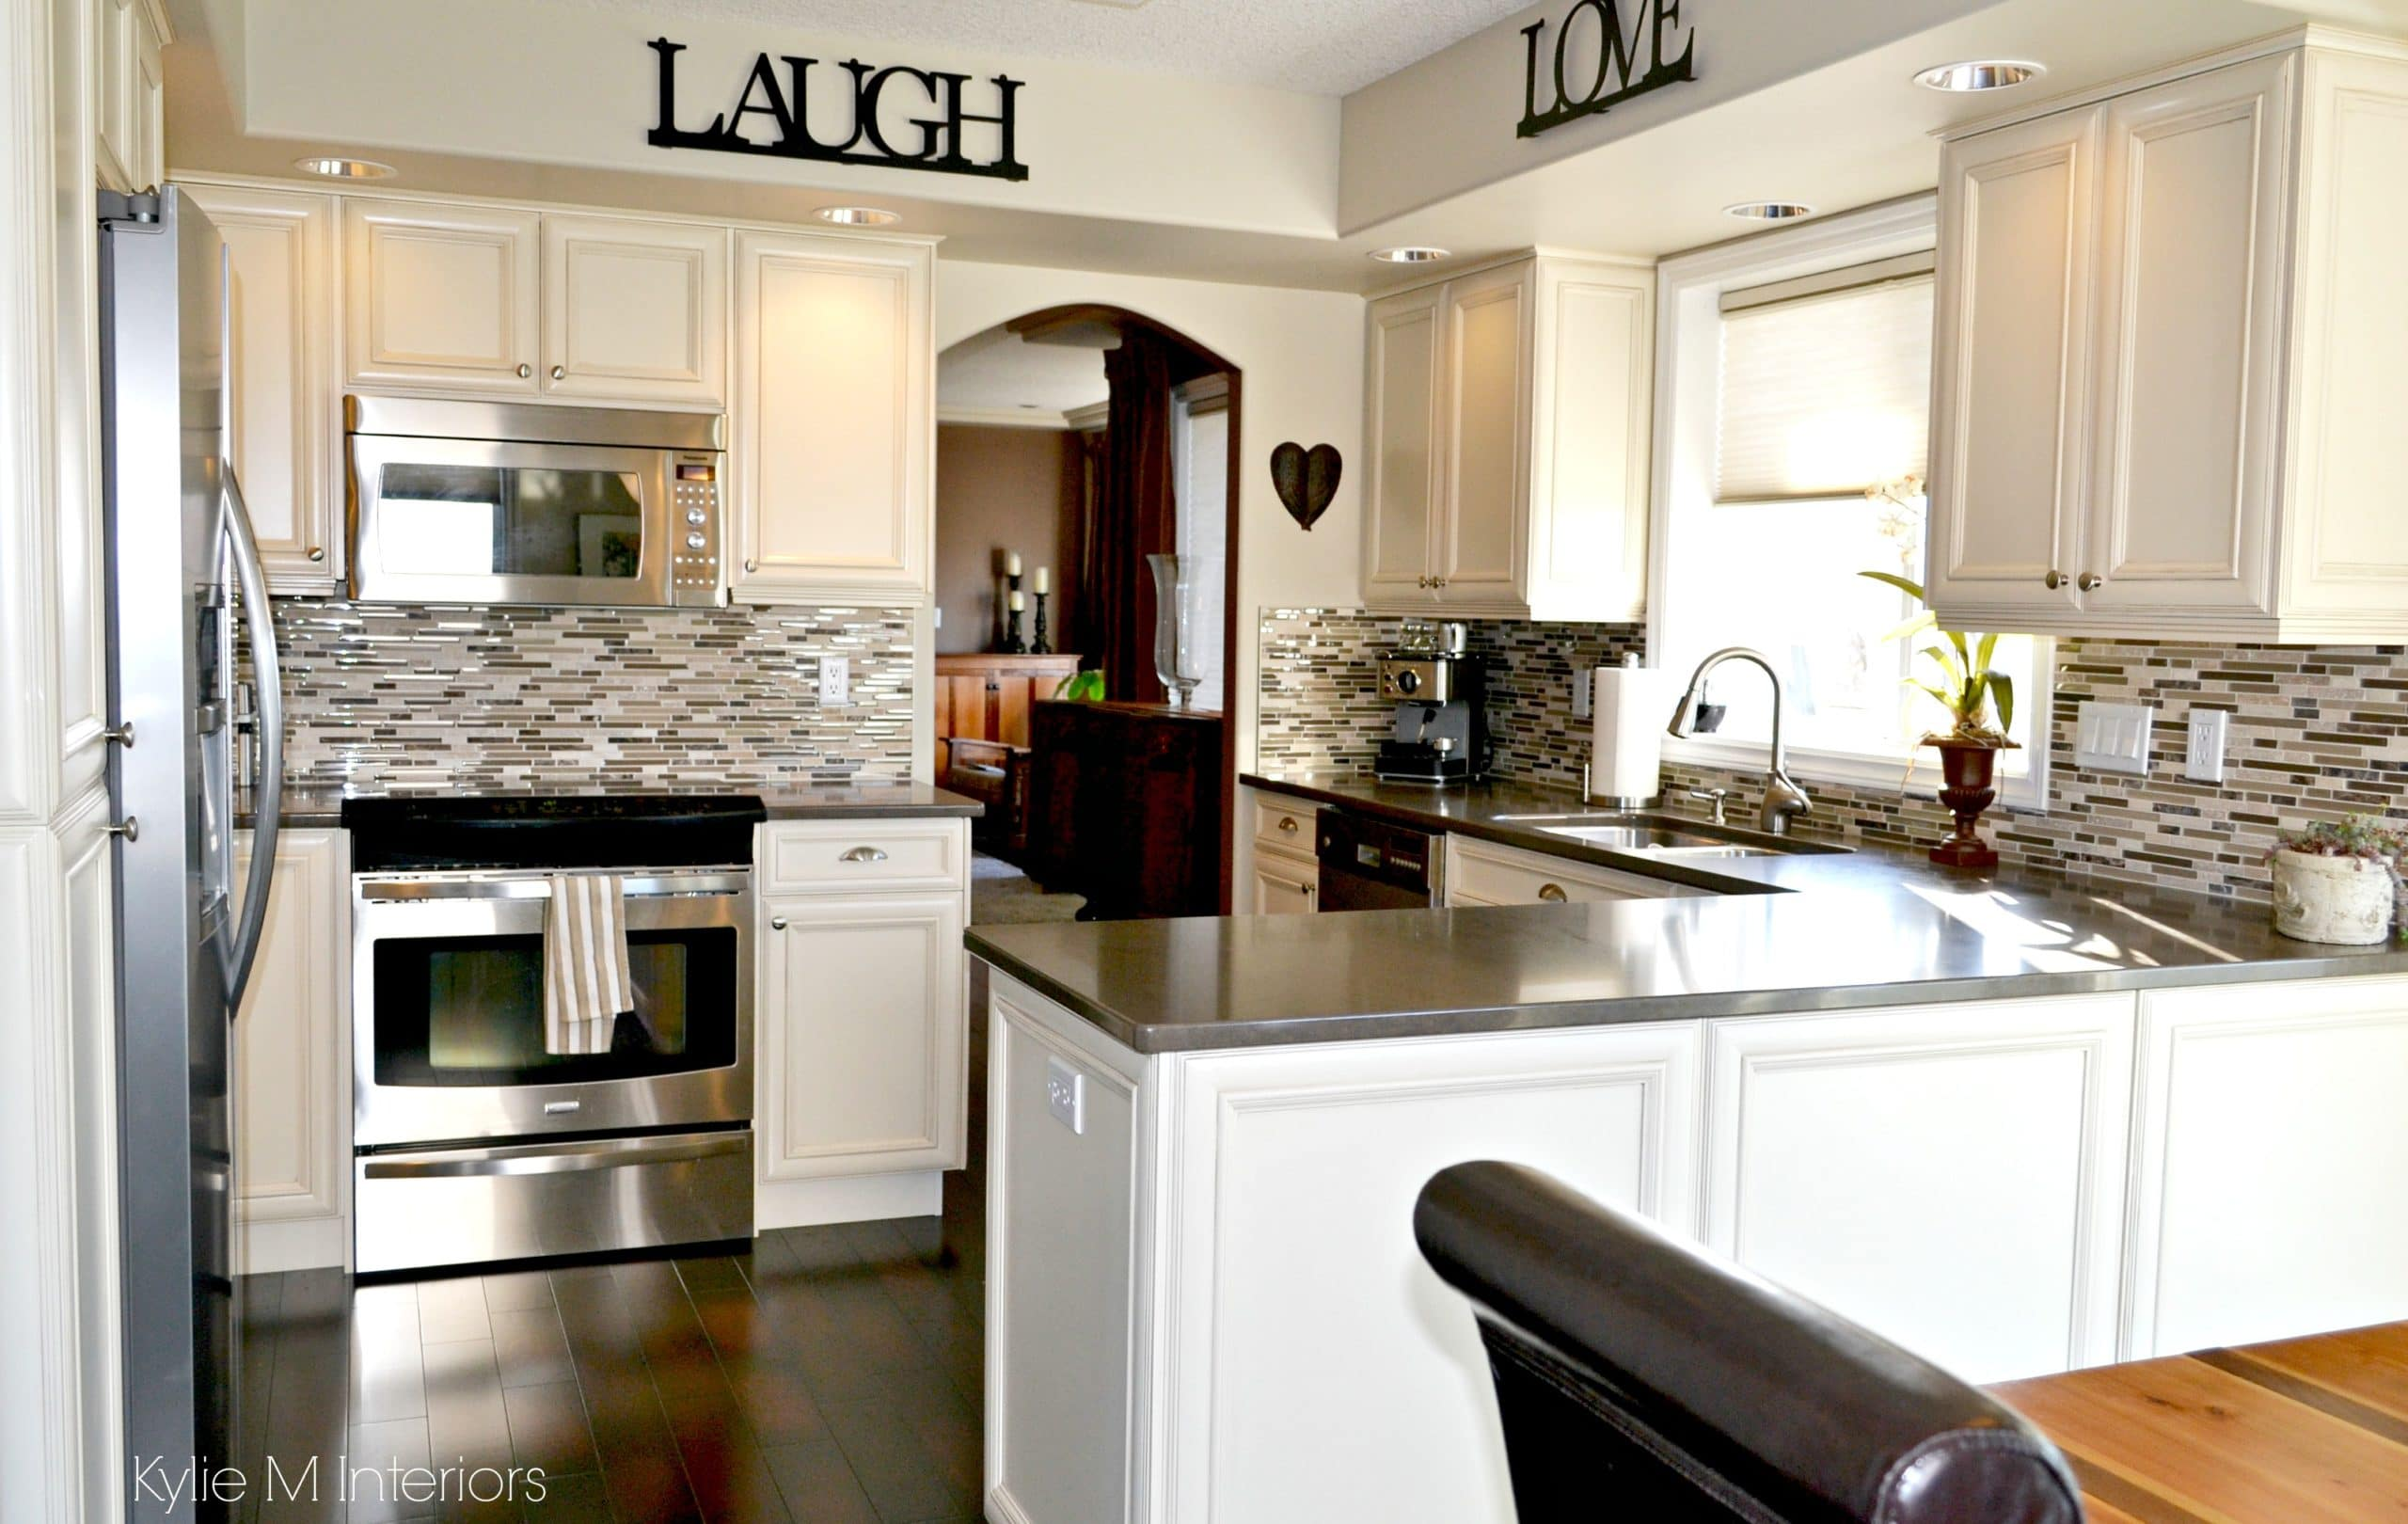 What Color Countertop Goes With Dark Cabinets What Color Countertops Go With Cream Cabinets